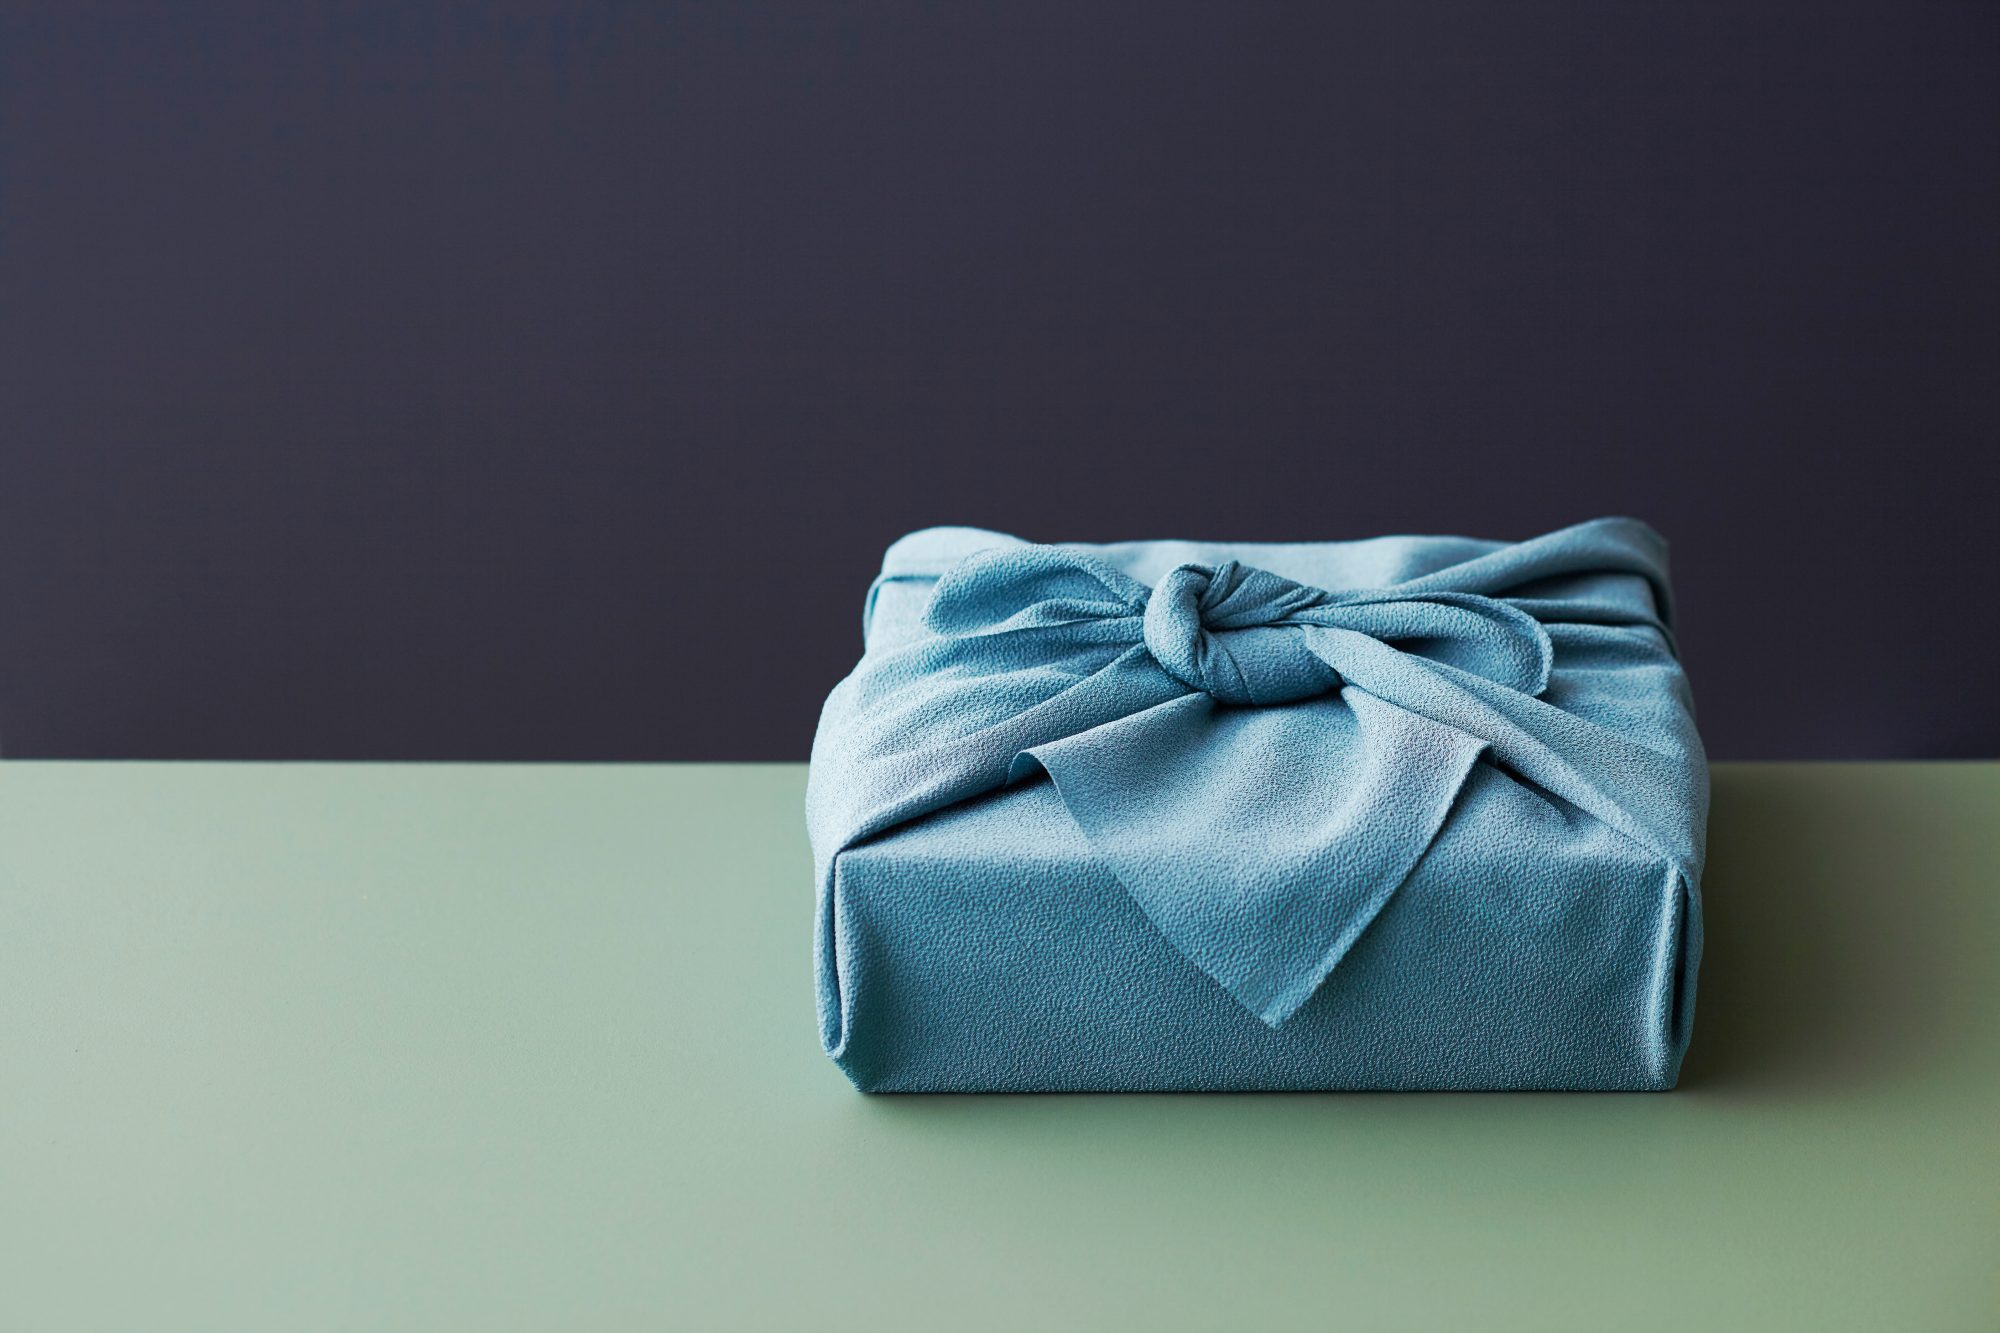 Next Wedding Gift List: Wedding Gifts And Registry Tips